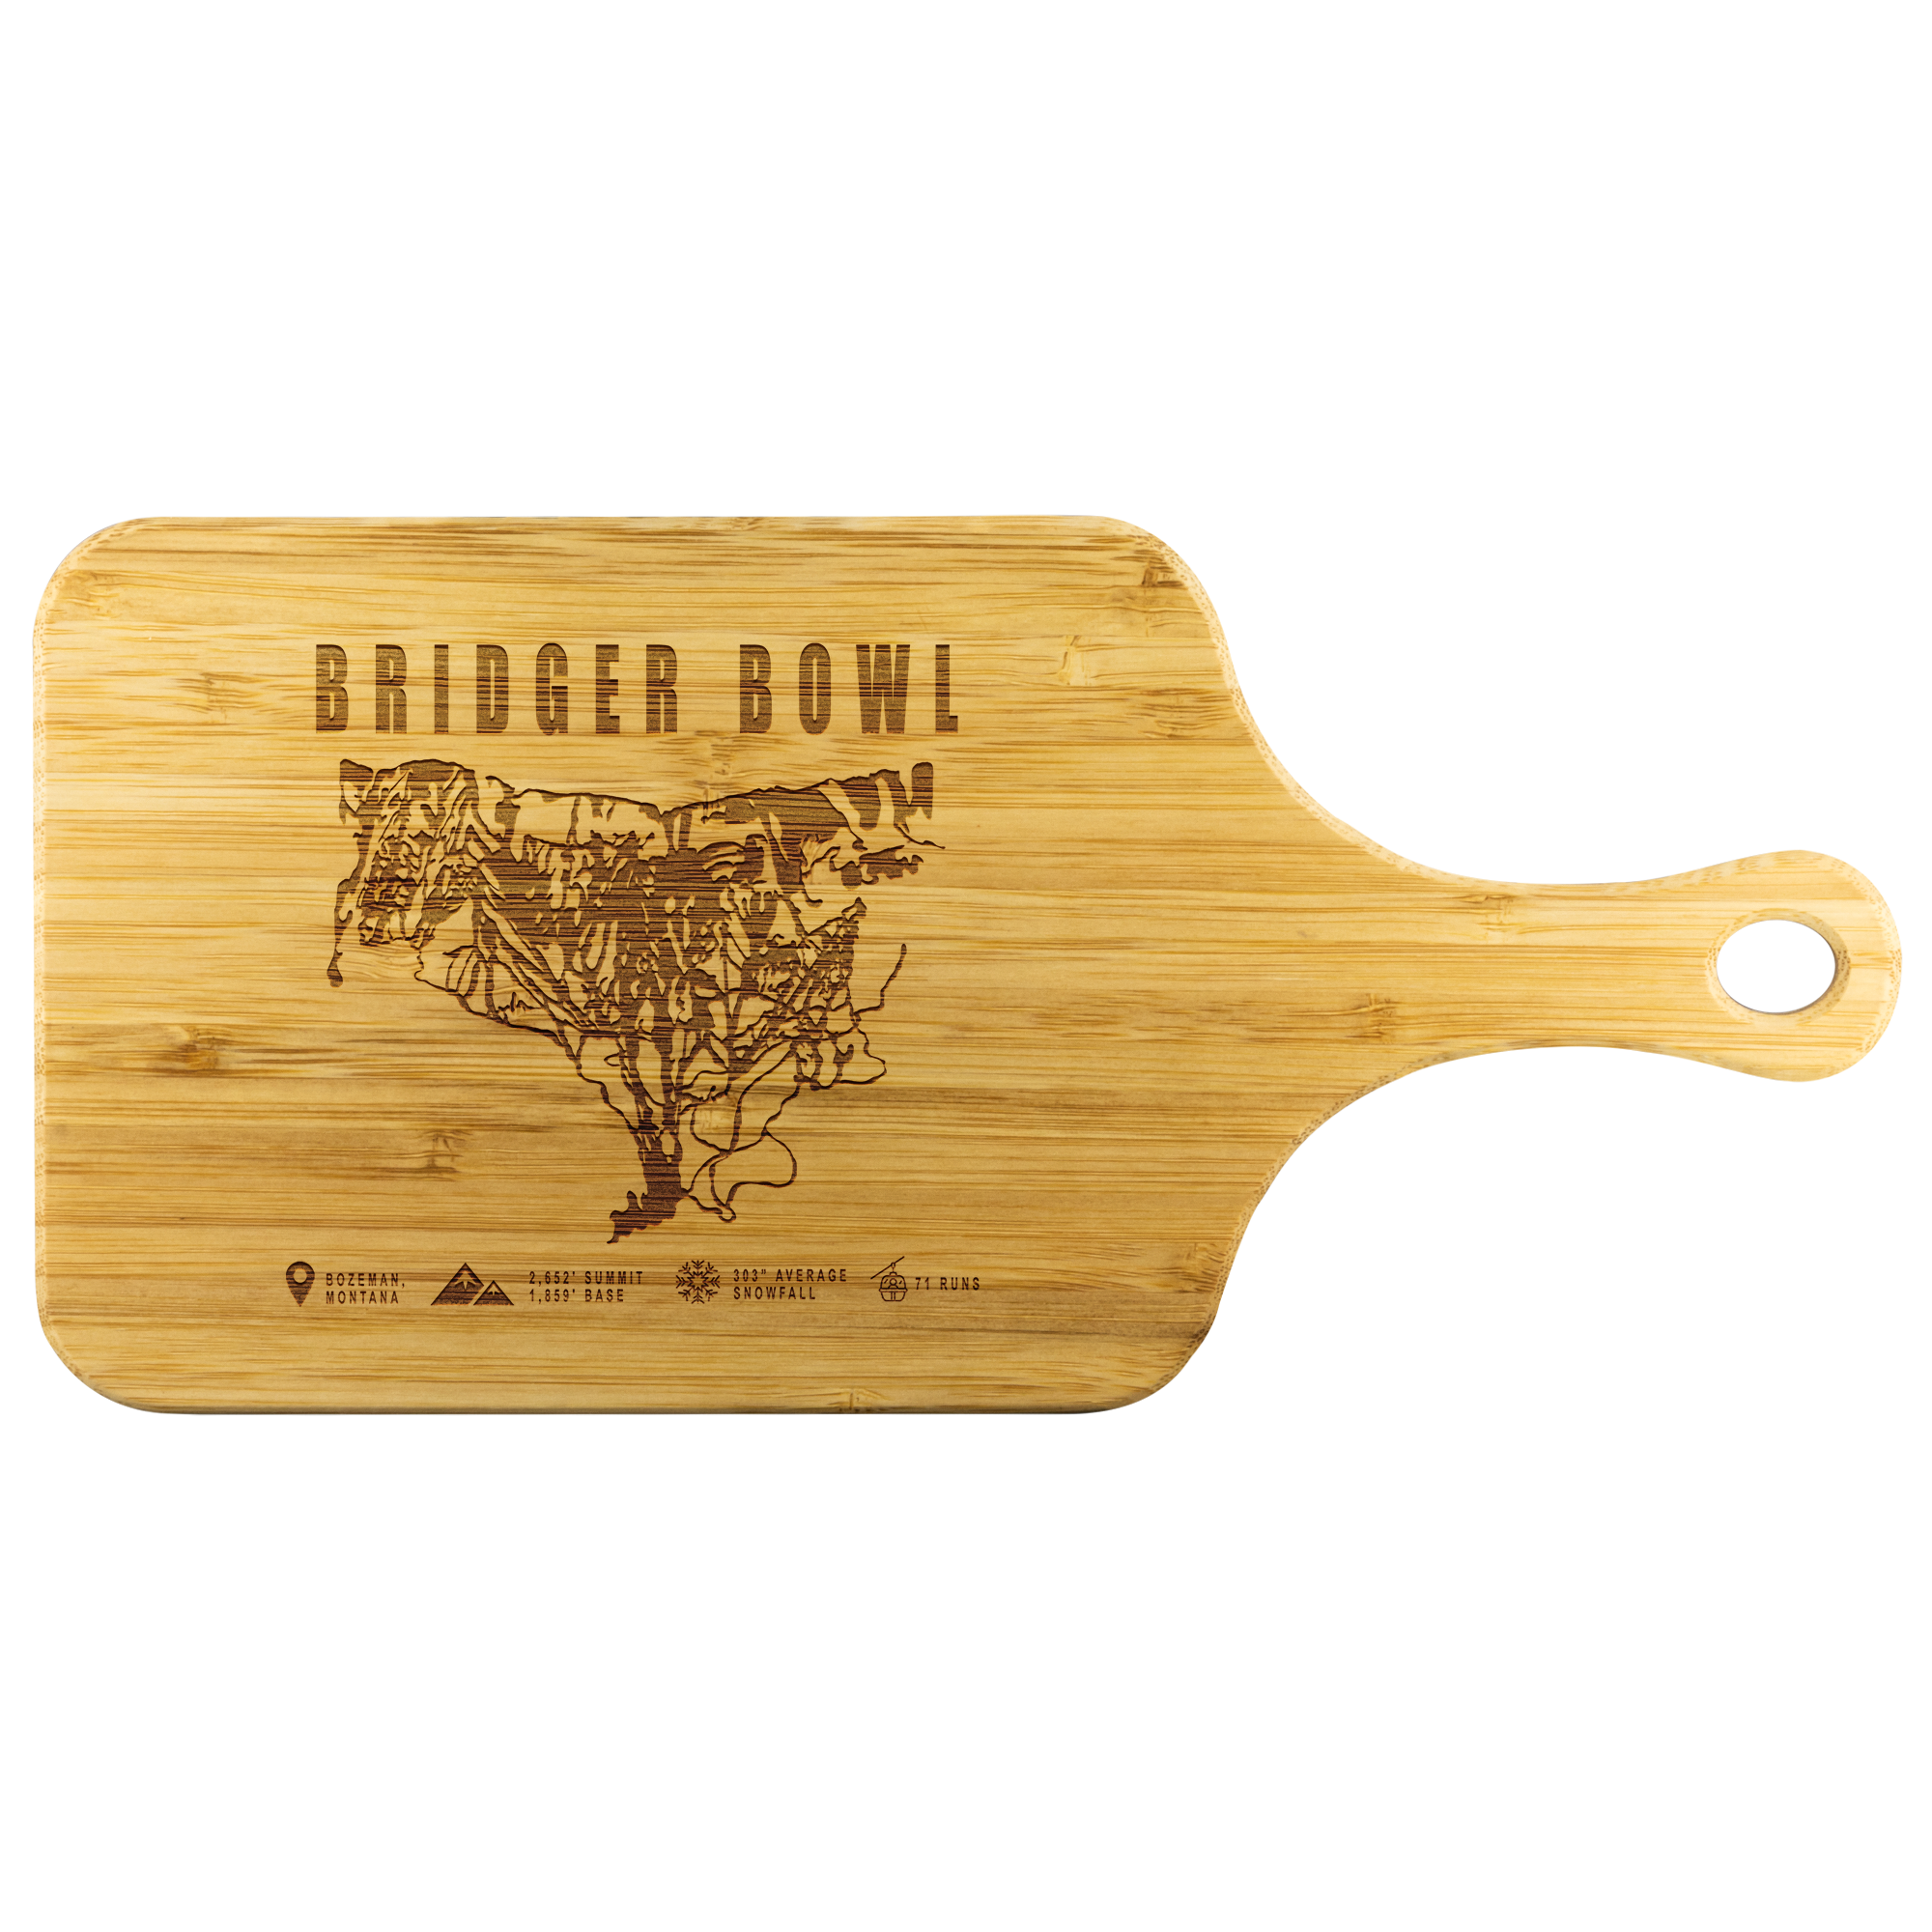 Bridger Bowl Montana Ski-Resort Map Bamboo Cutting Board With Handle